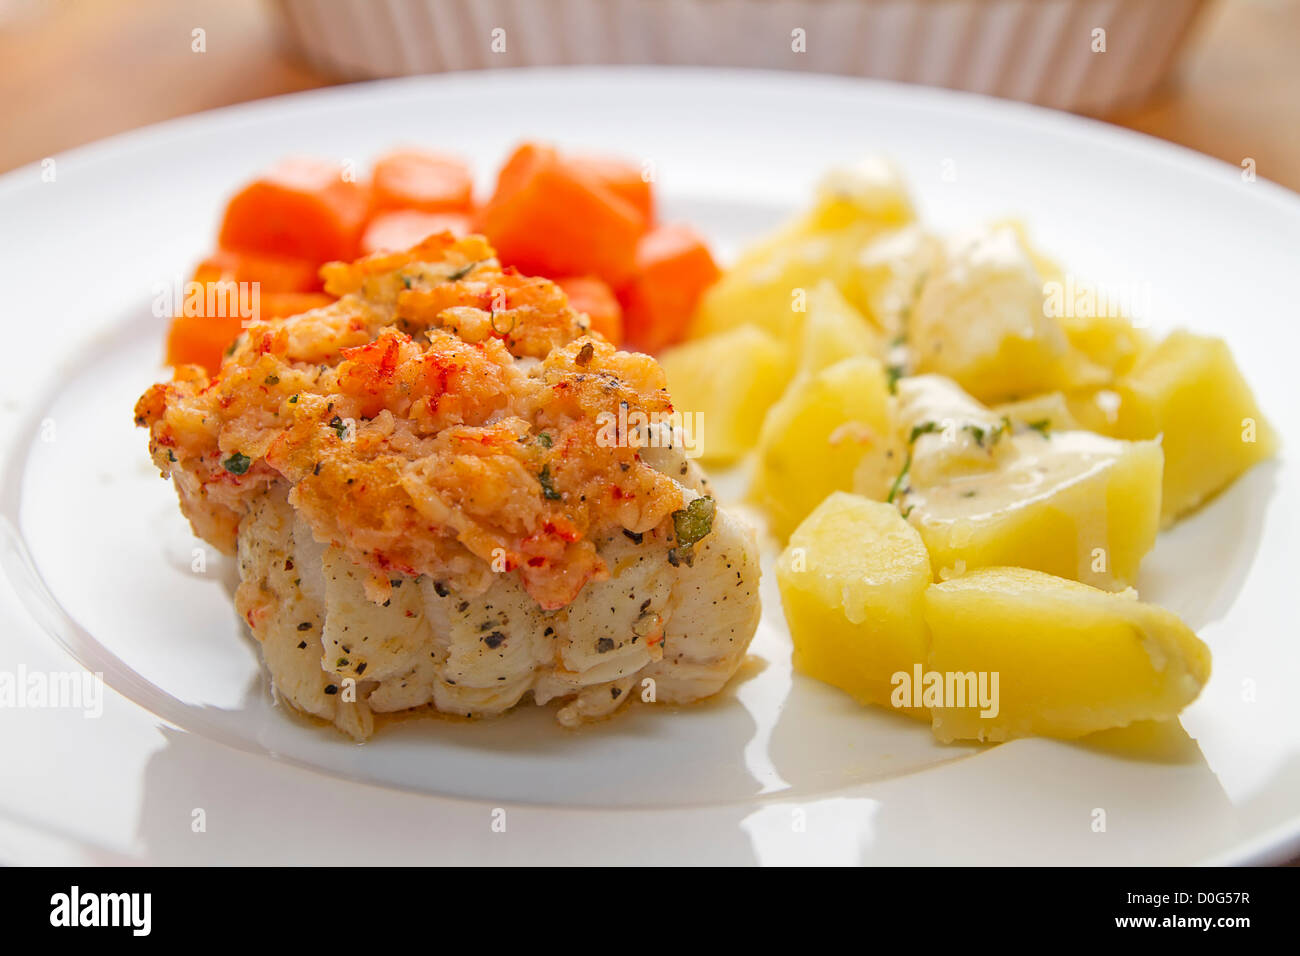 Monkfish with crayfish crust and vegetables - Stock Image